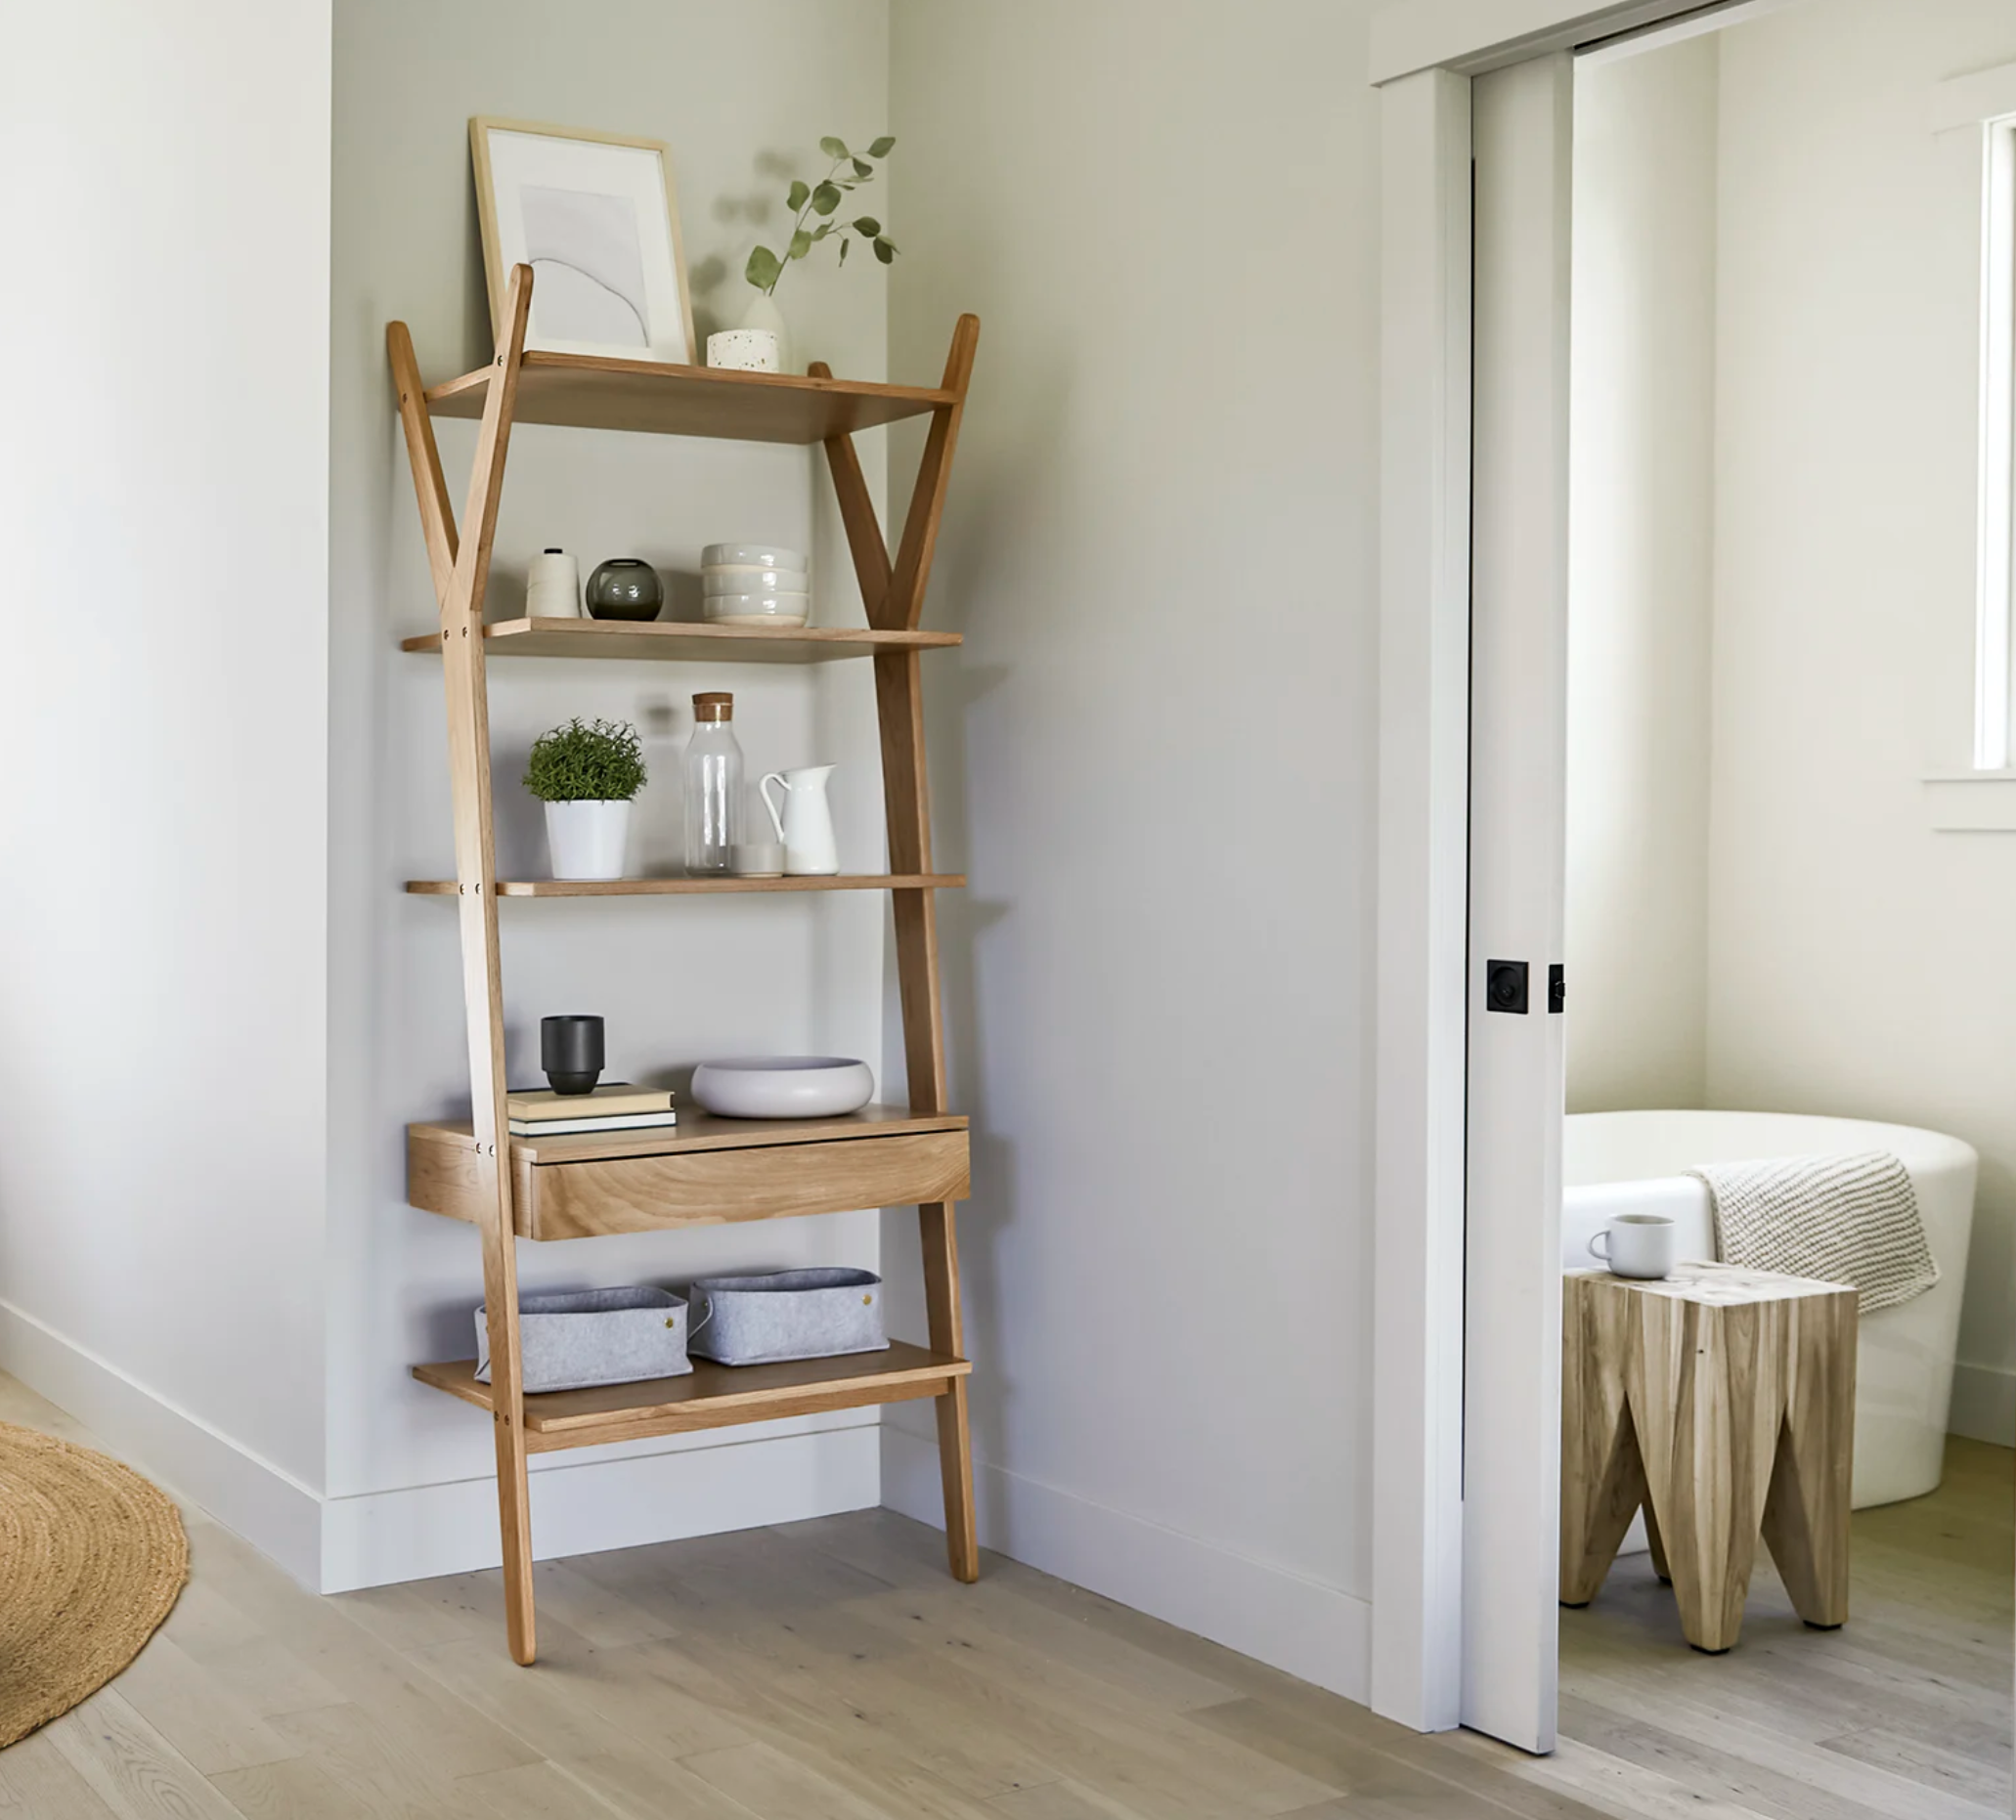 the five-tier shelf leaning against a wall